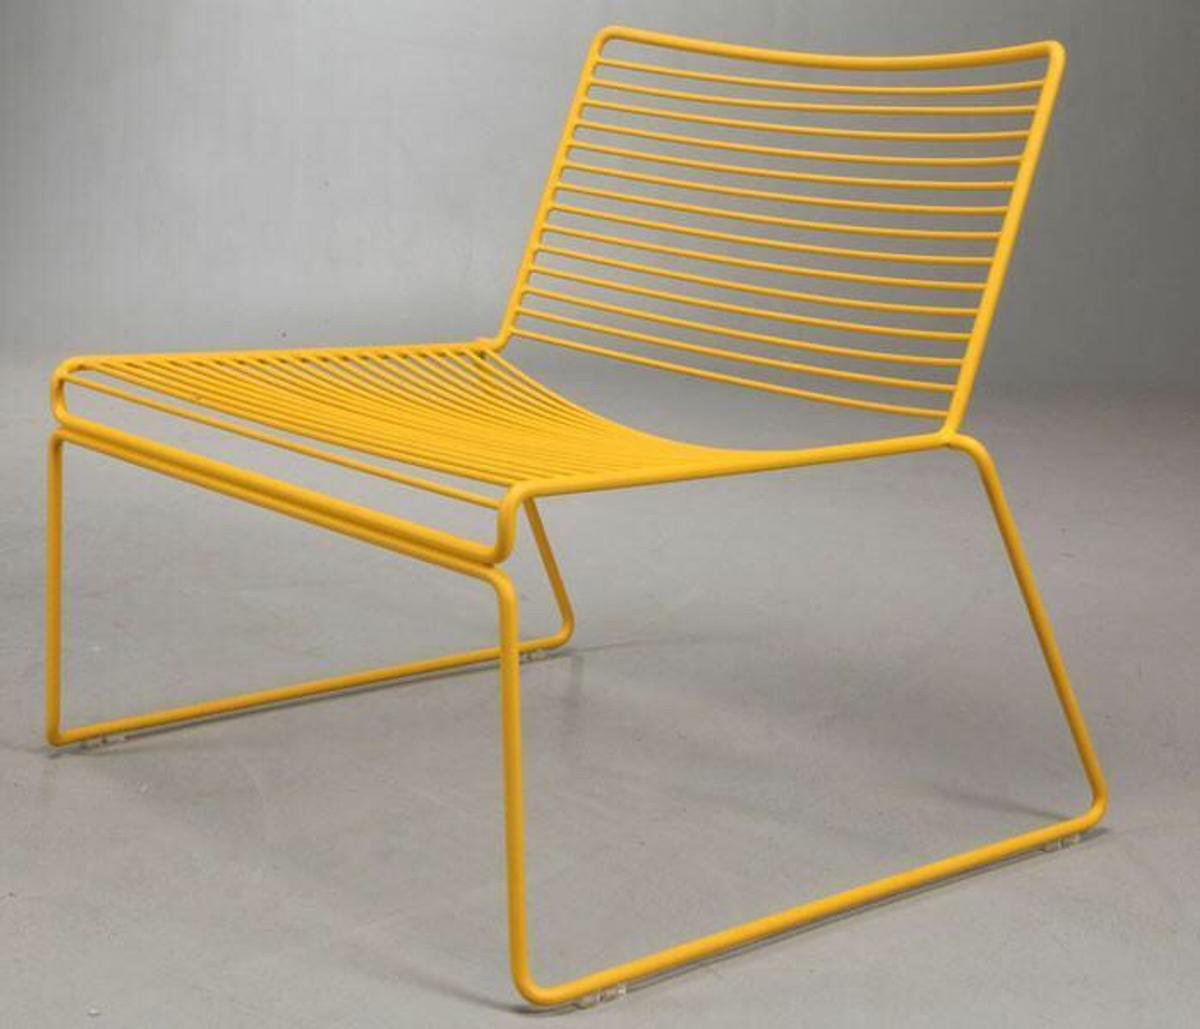 Hay Lounge Stoel.Hee Lounge Chair Yellow In N7 Islington For 165 00 For Sale Shpock